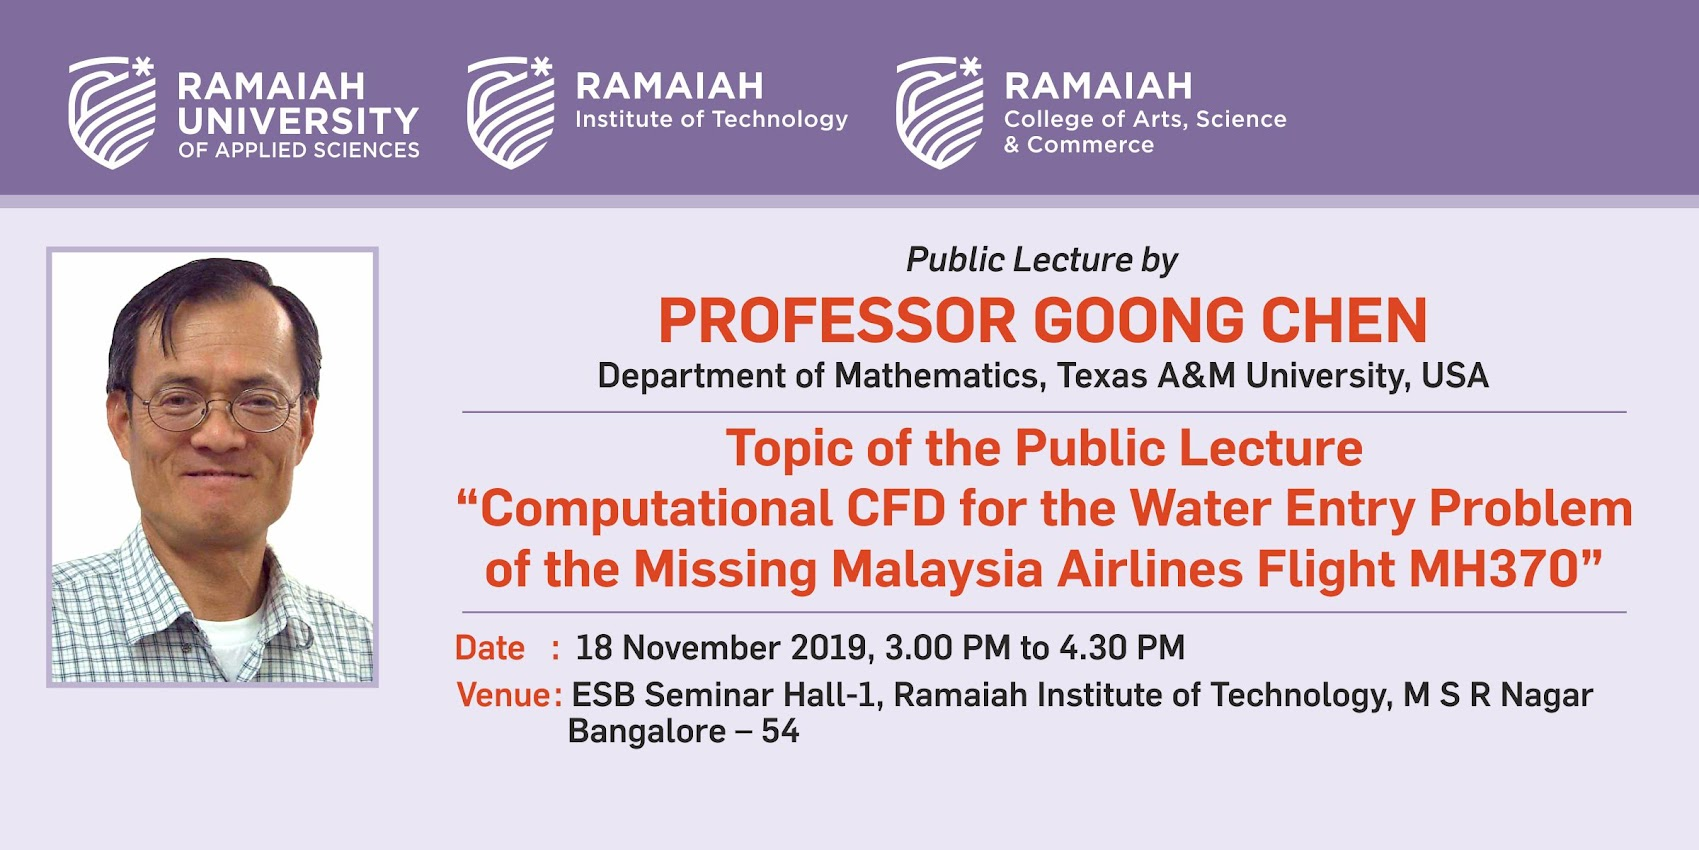 Public Lecture by Prof. Goong Chen